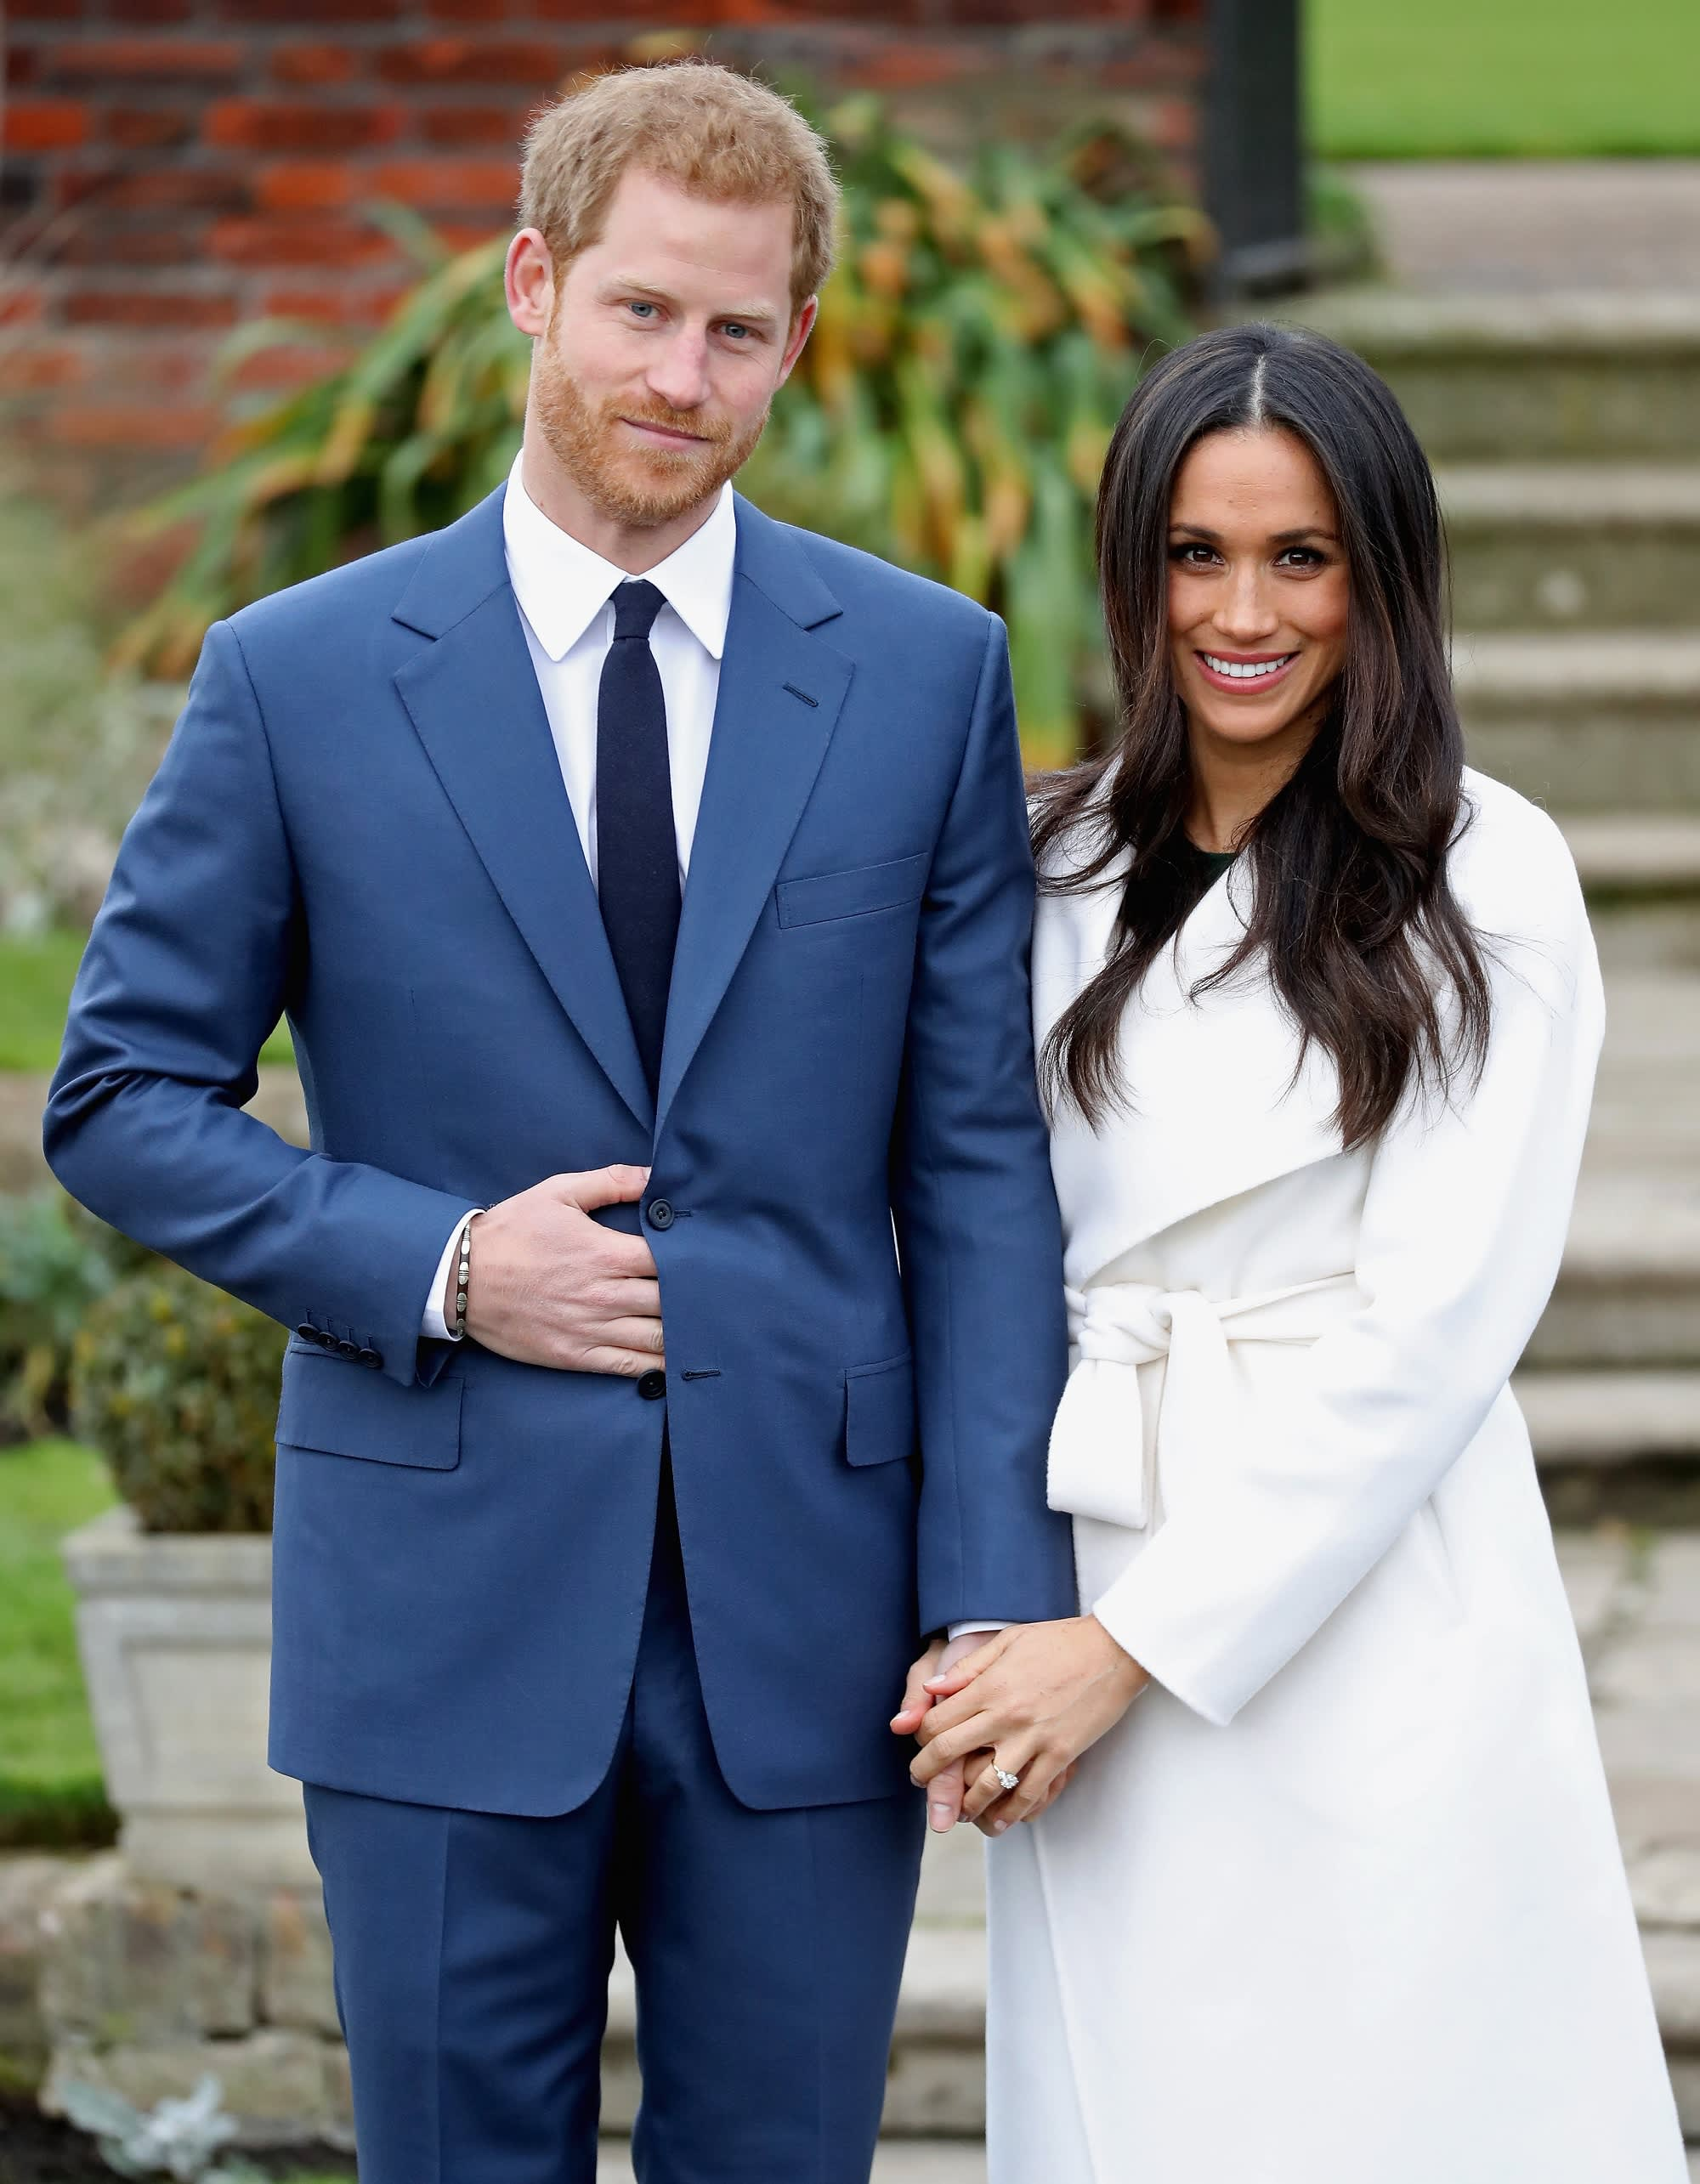 If Meghan Markle Went to MS Today, Shed Buy These 9 Things